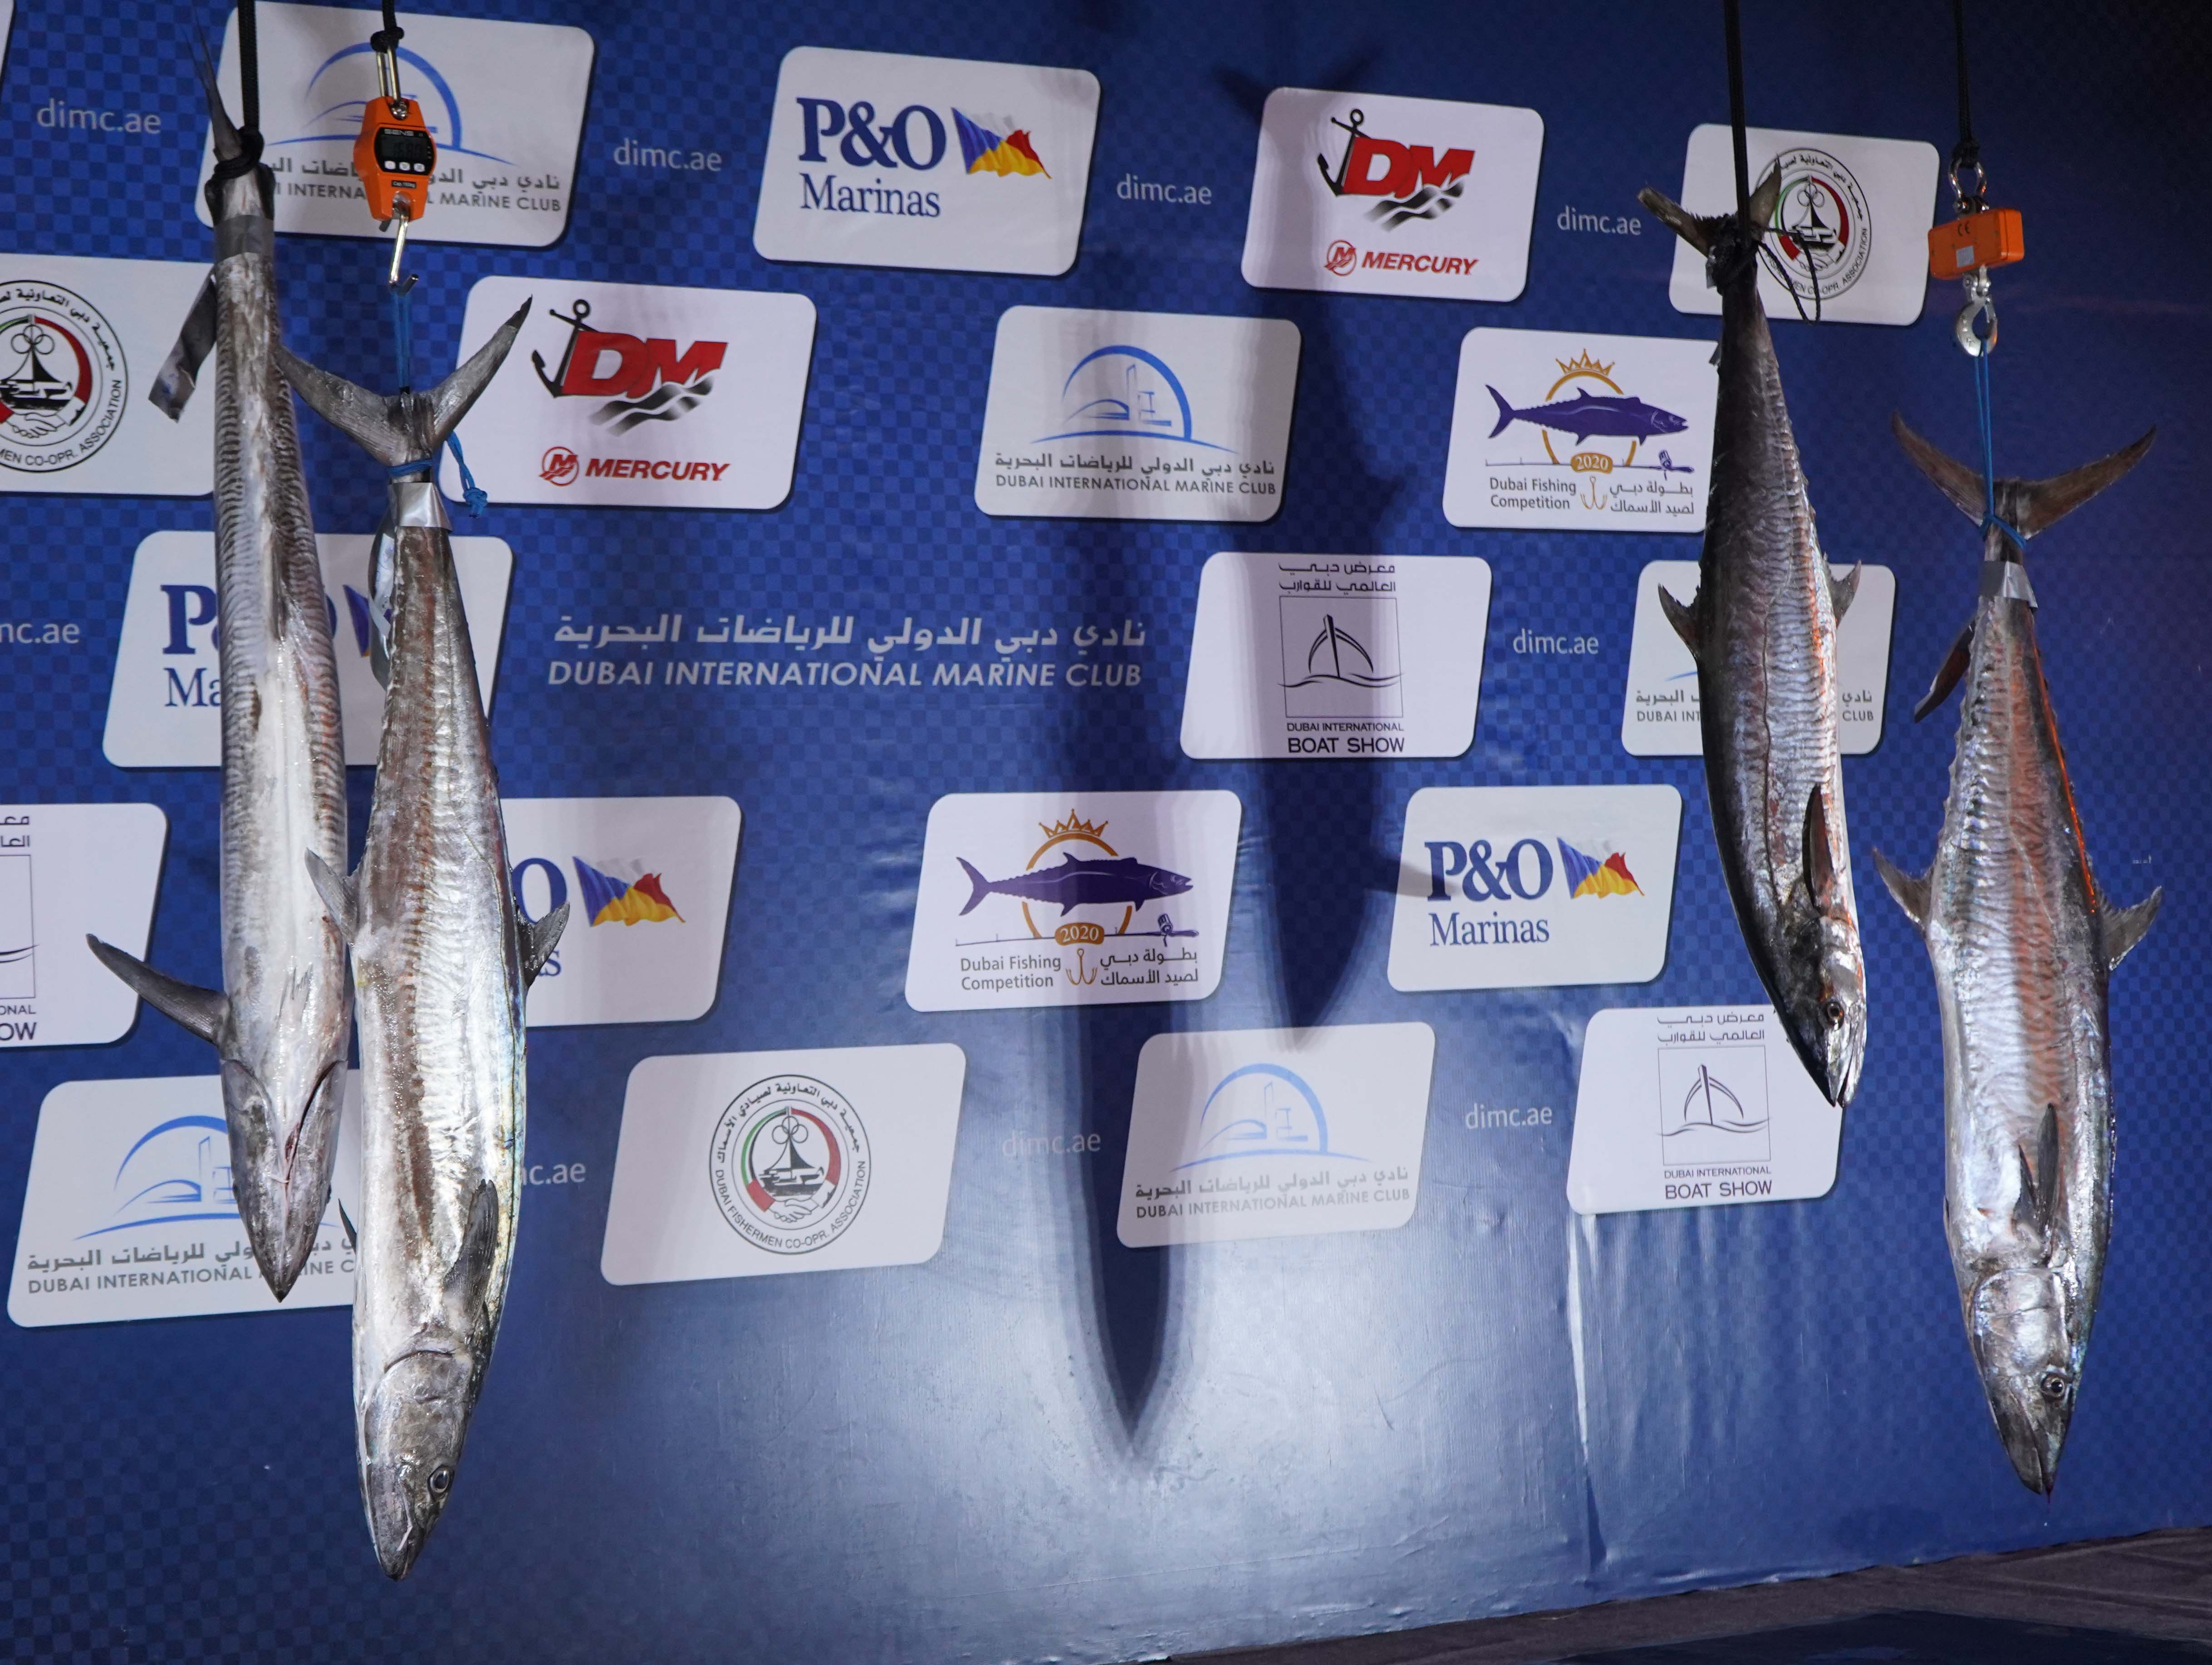 Excitement in Dubai Fishing Competition